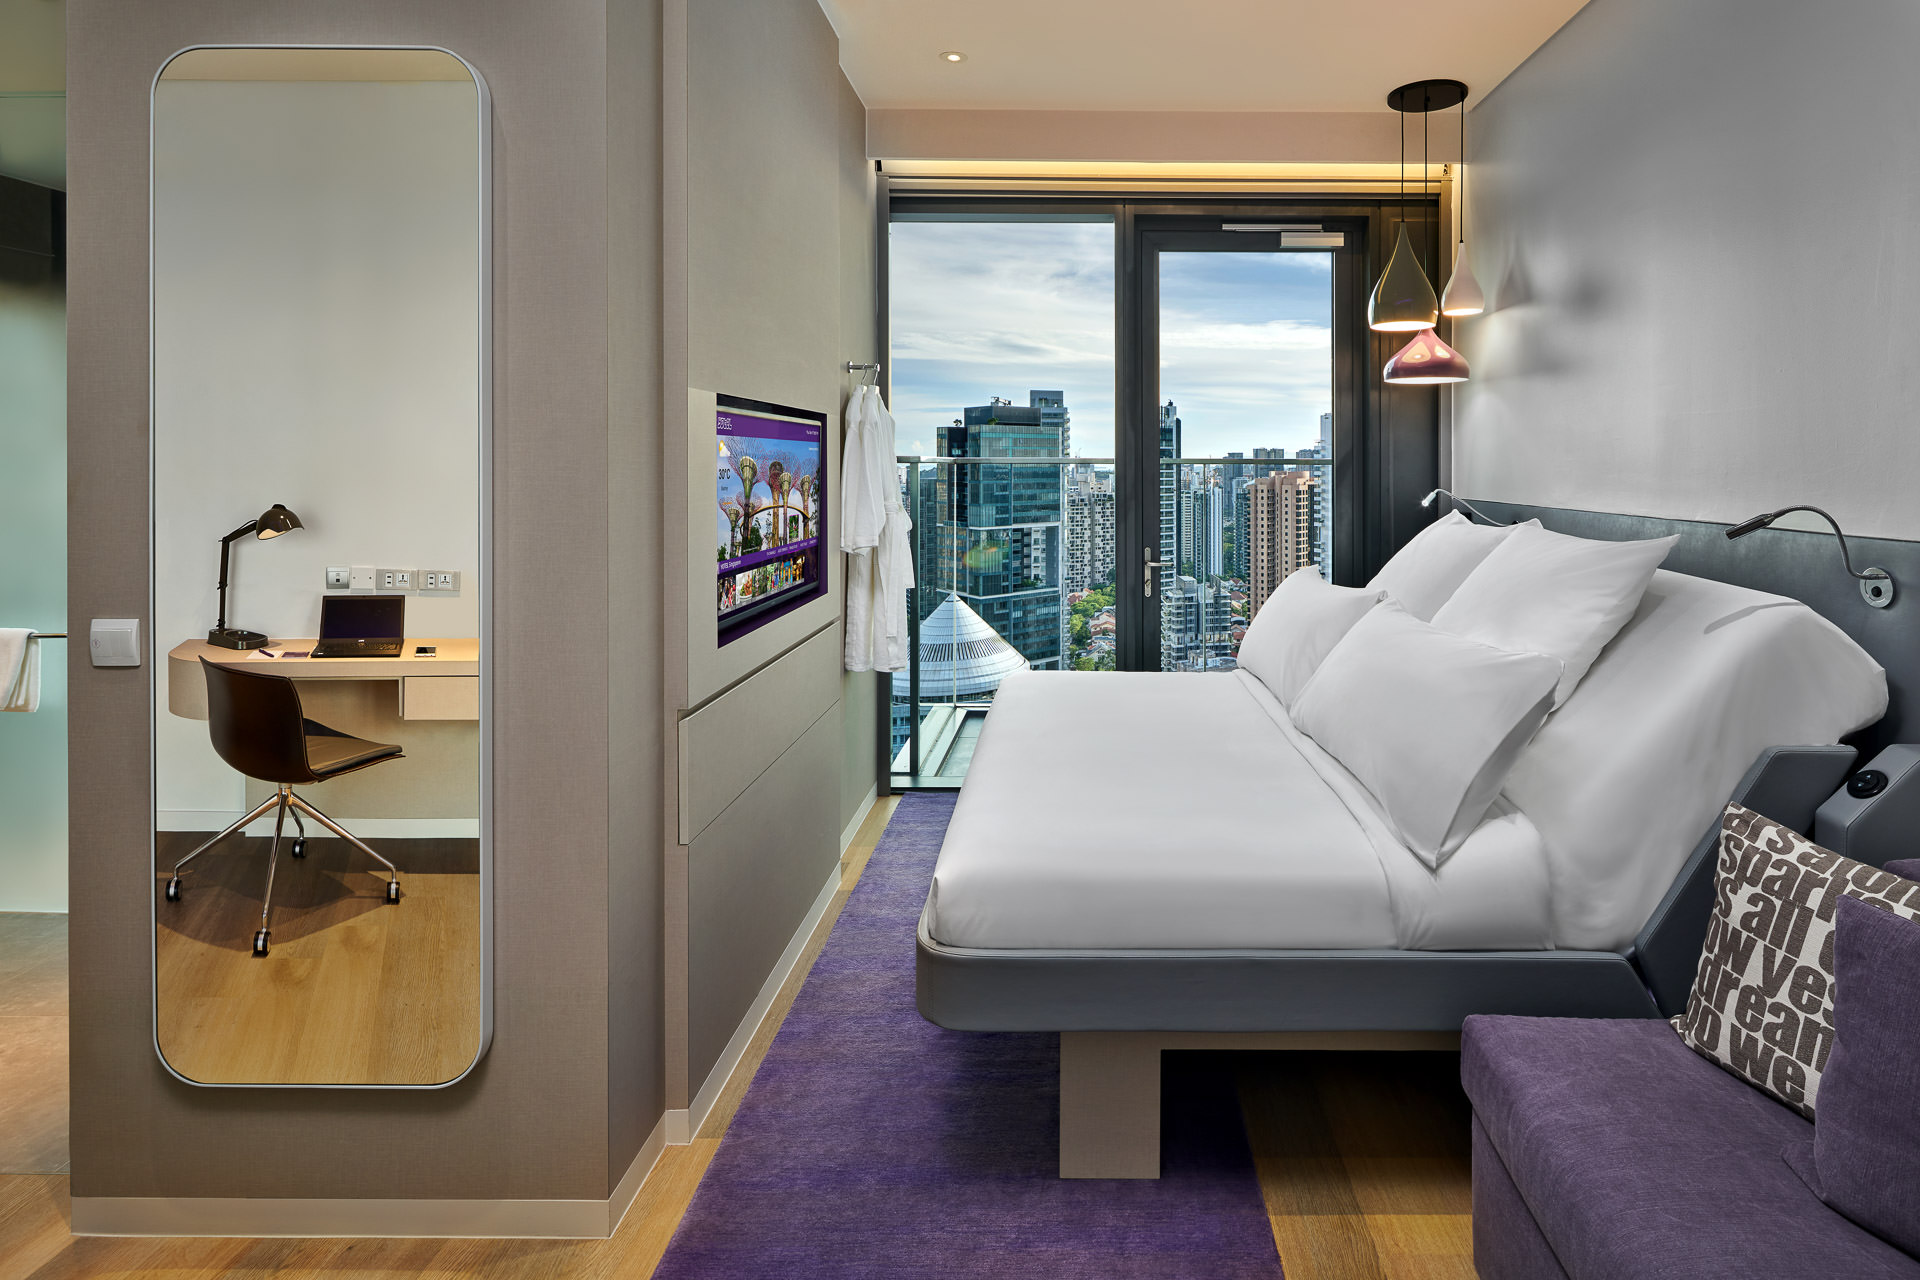 interior photography at yotel in singapore of deluxe bedroom with mirror showing desk and laptop